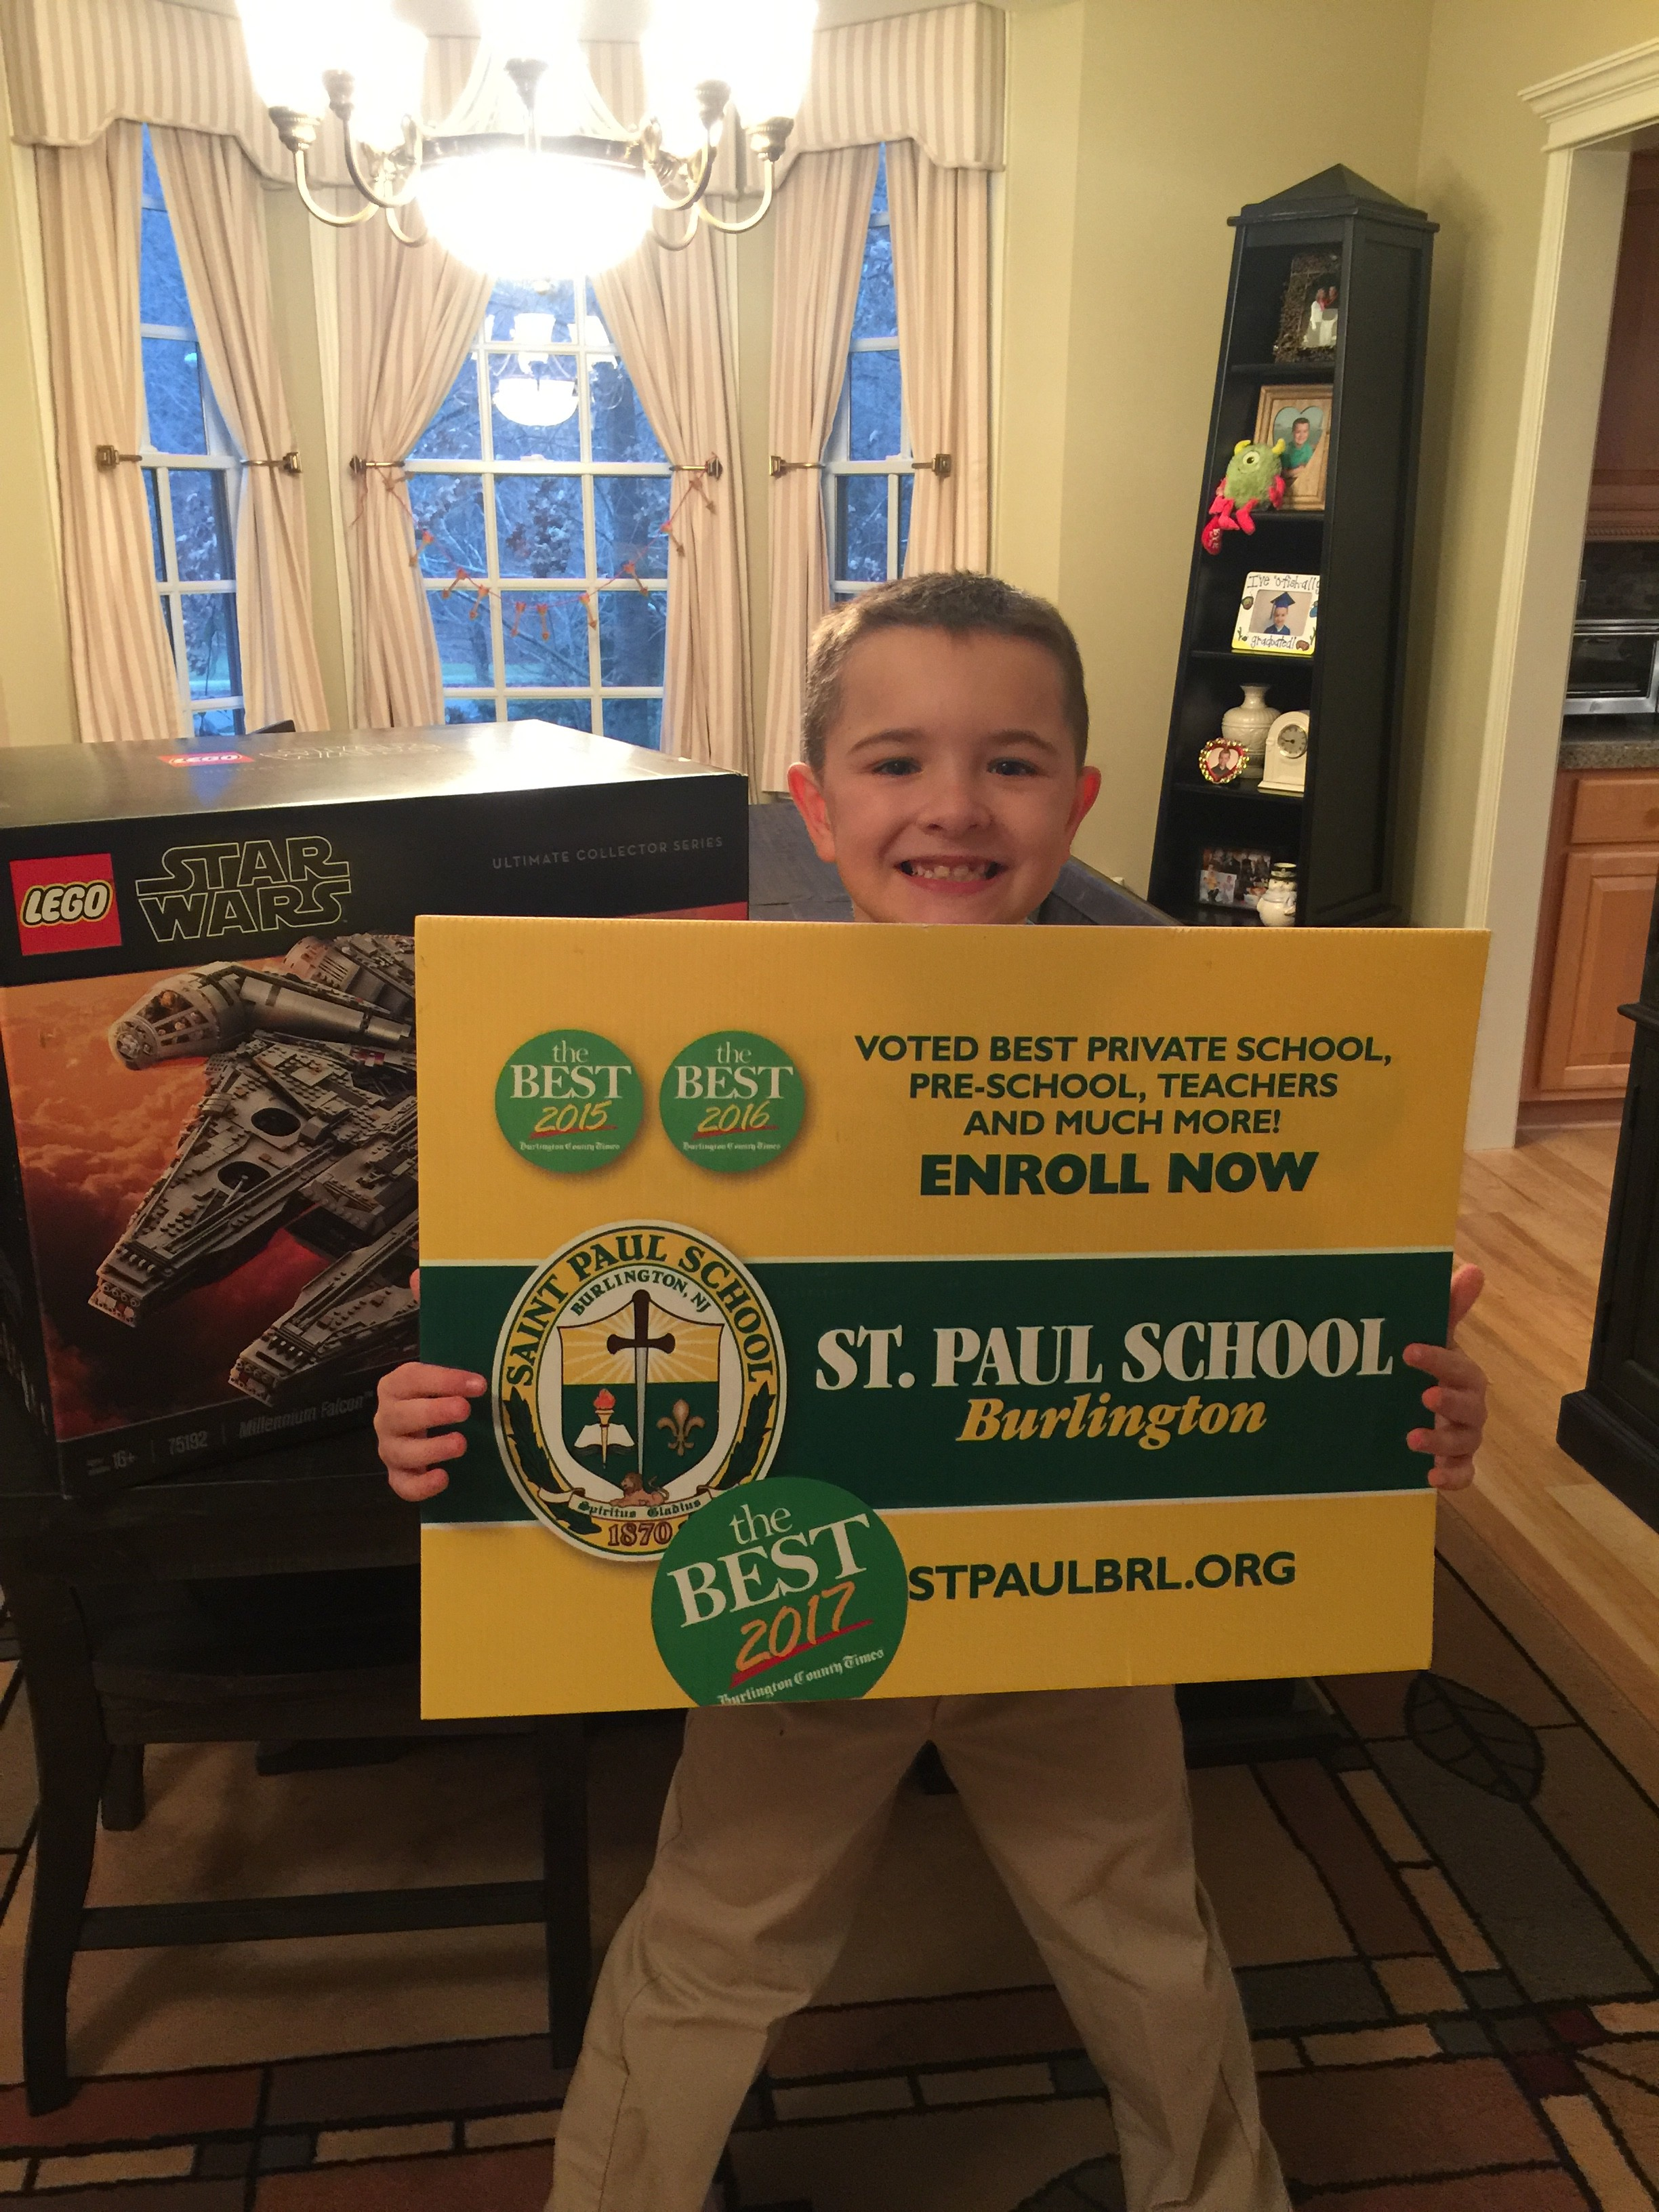 2018 BRICKPICKER LEGO RAFFLE FOR ST. PAUL SCHOOL!